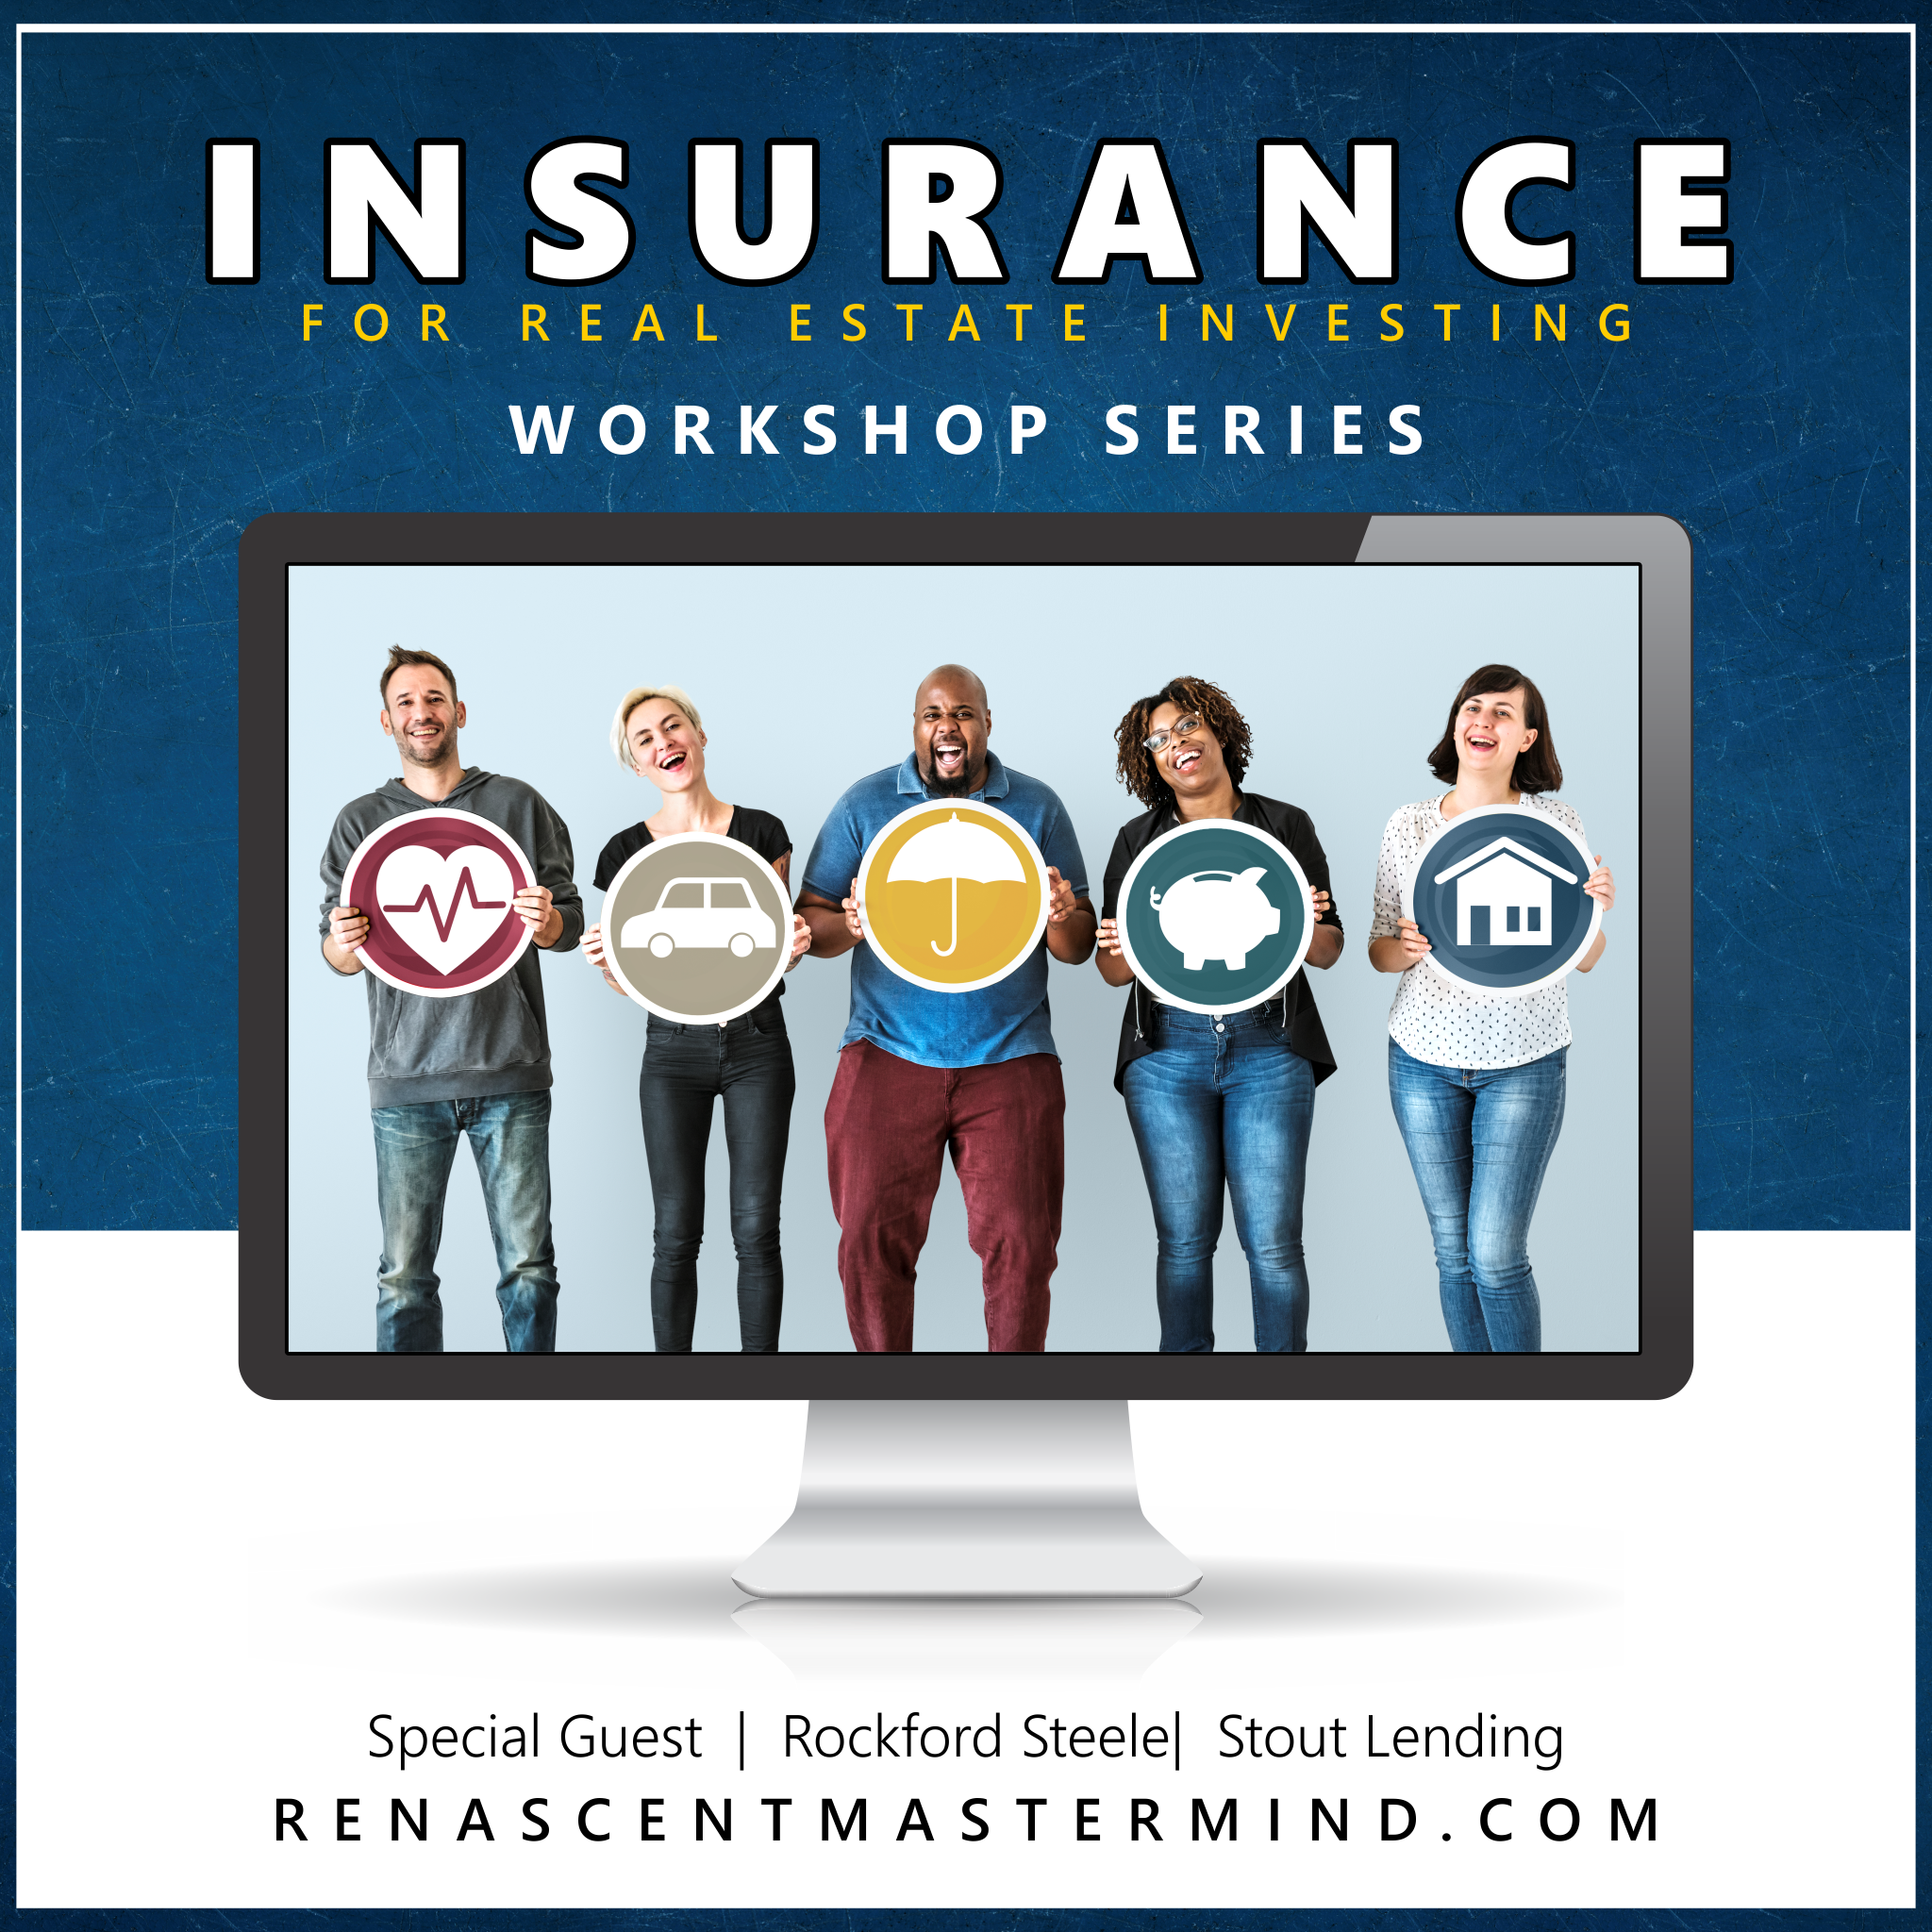 Copy of Insurance for Real Estate Investing with Rockford Steele, Stout Lending | Workshop Series